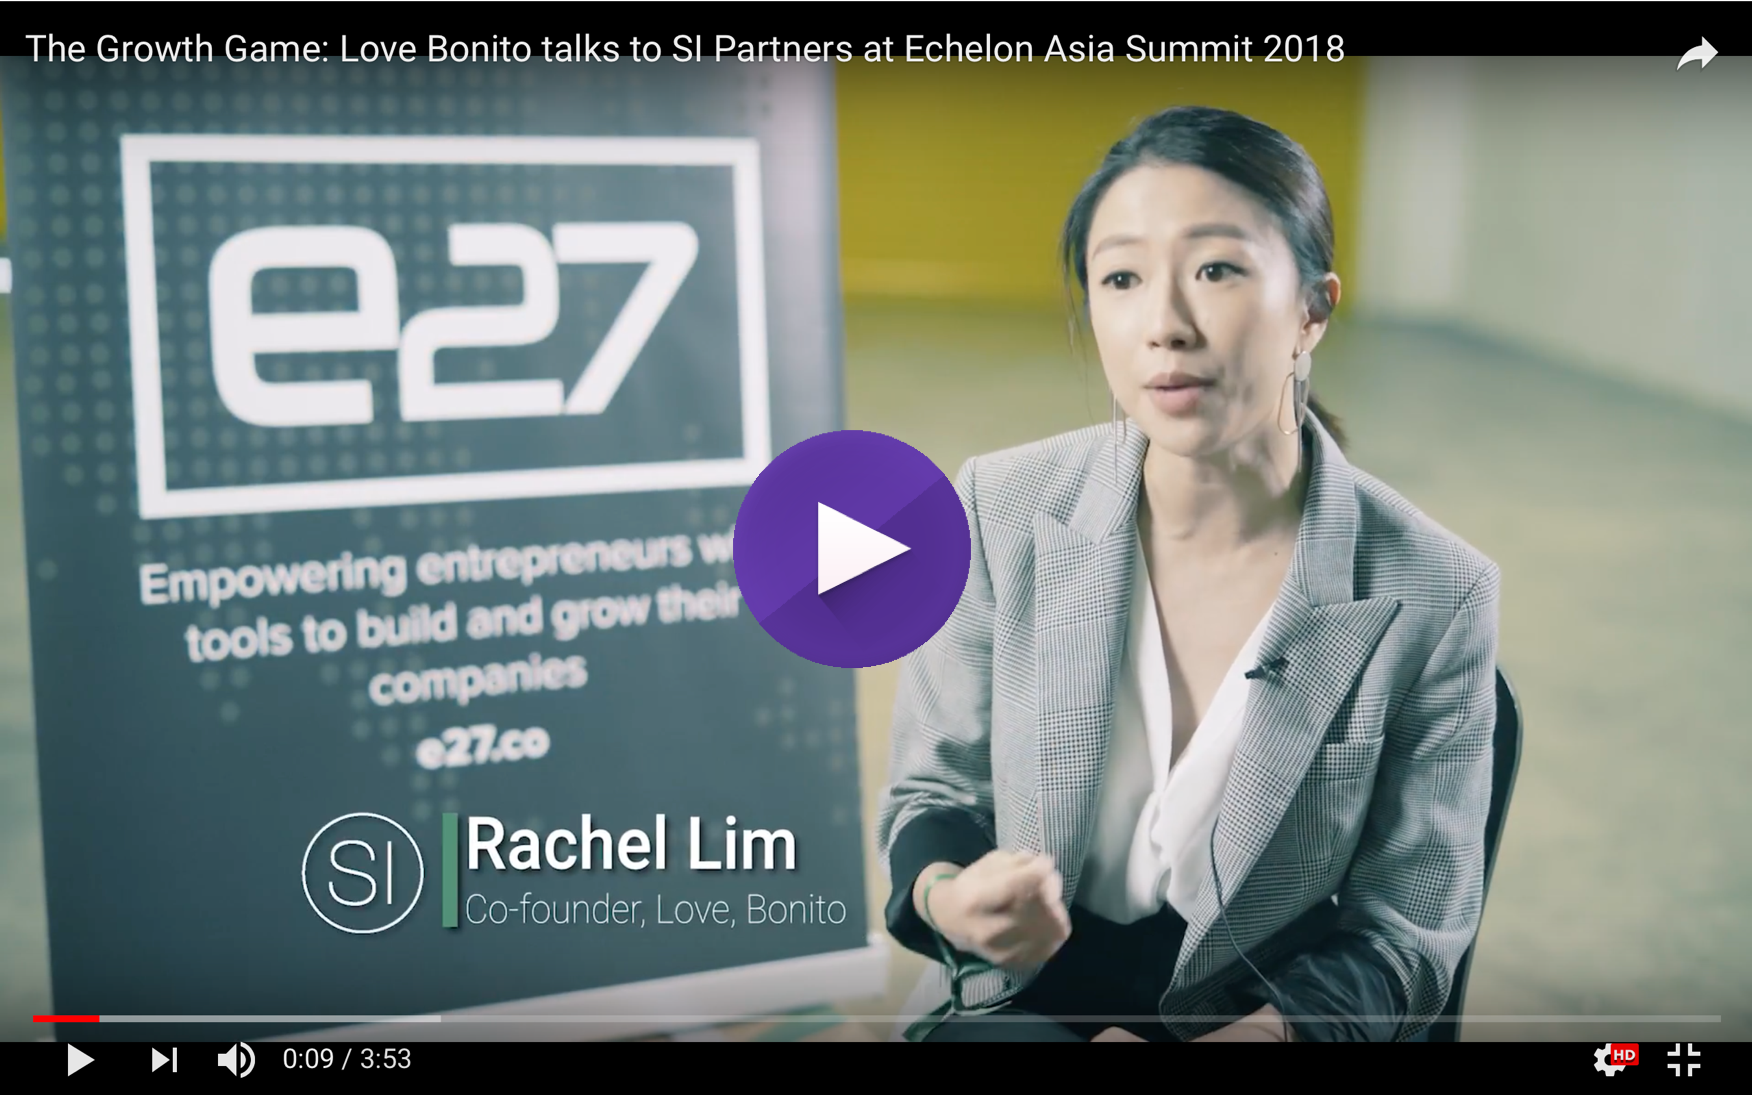 Watch: The Growth Game- Rachel Lim